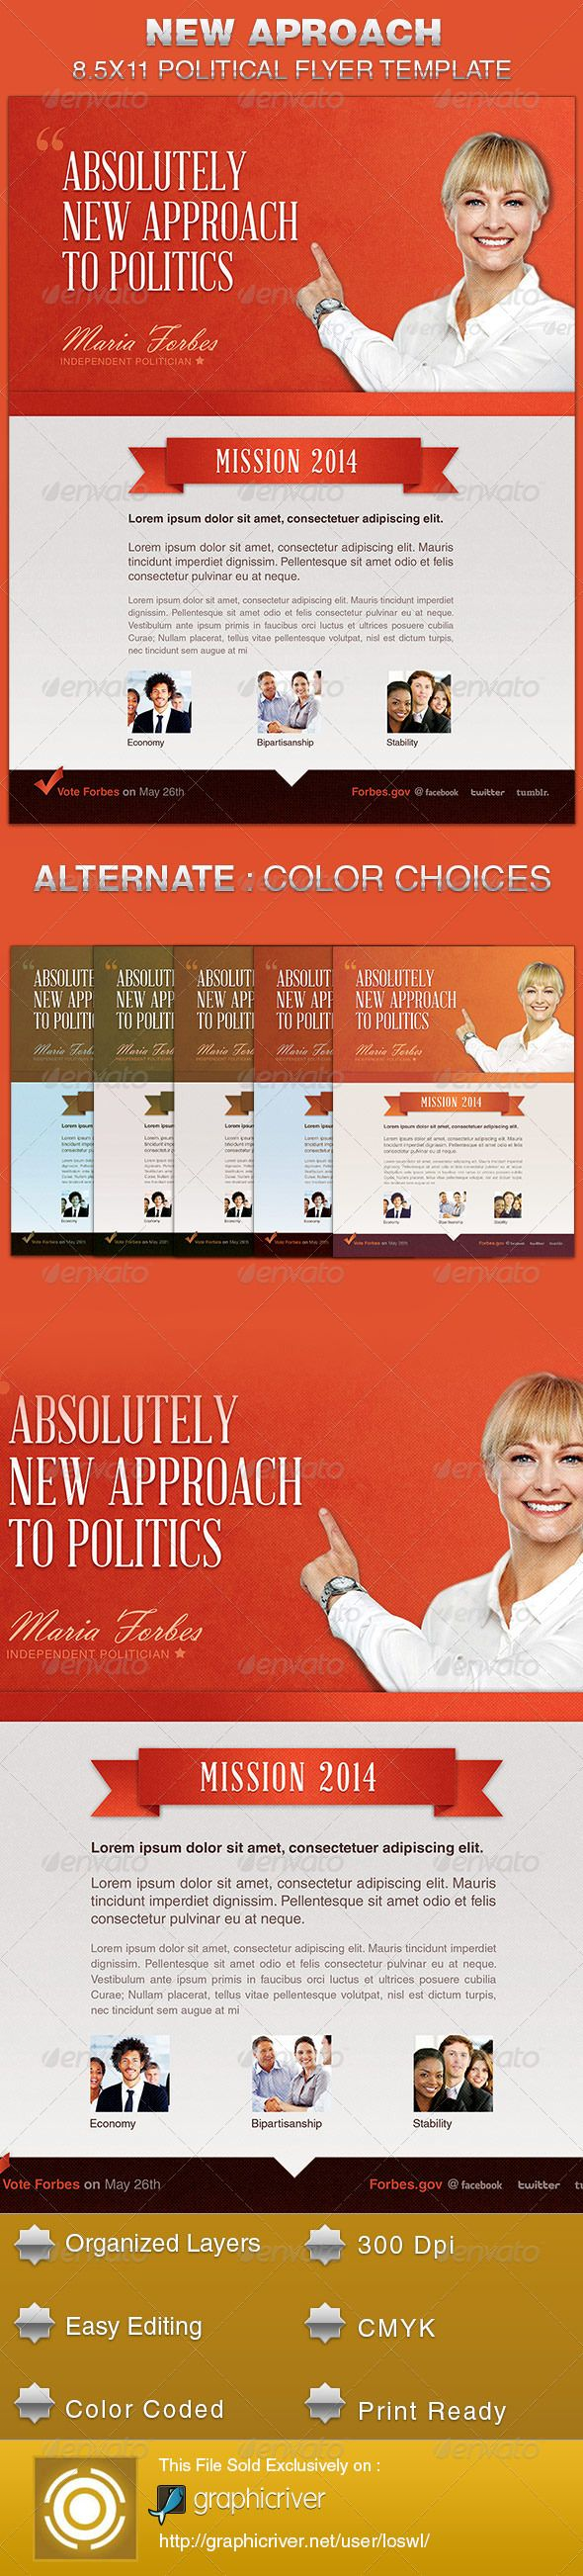 17 best images about political flyer template fonts new approach political flyer template